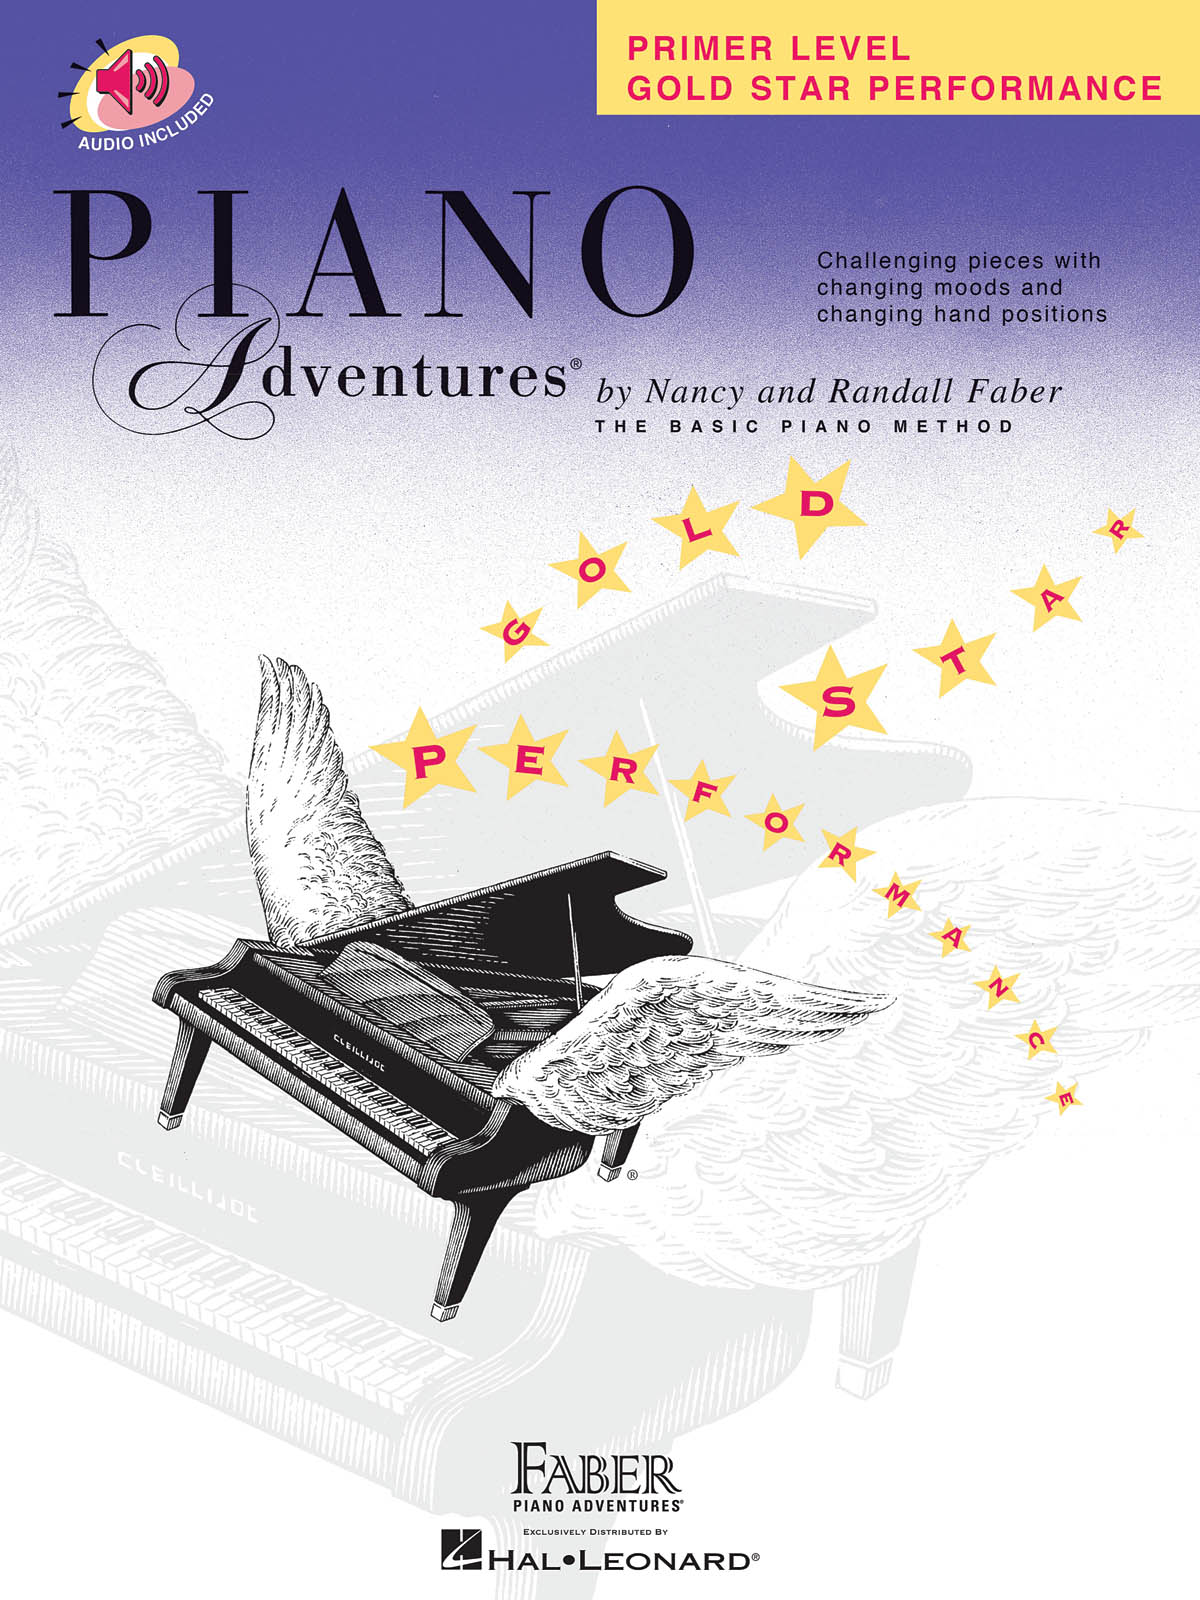 Faber Piano Adventures, Gold Star Performance, Primer